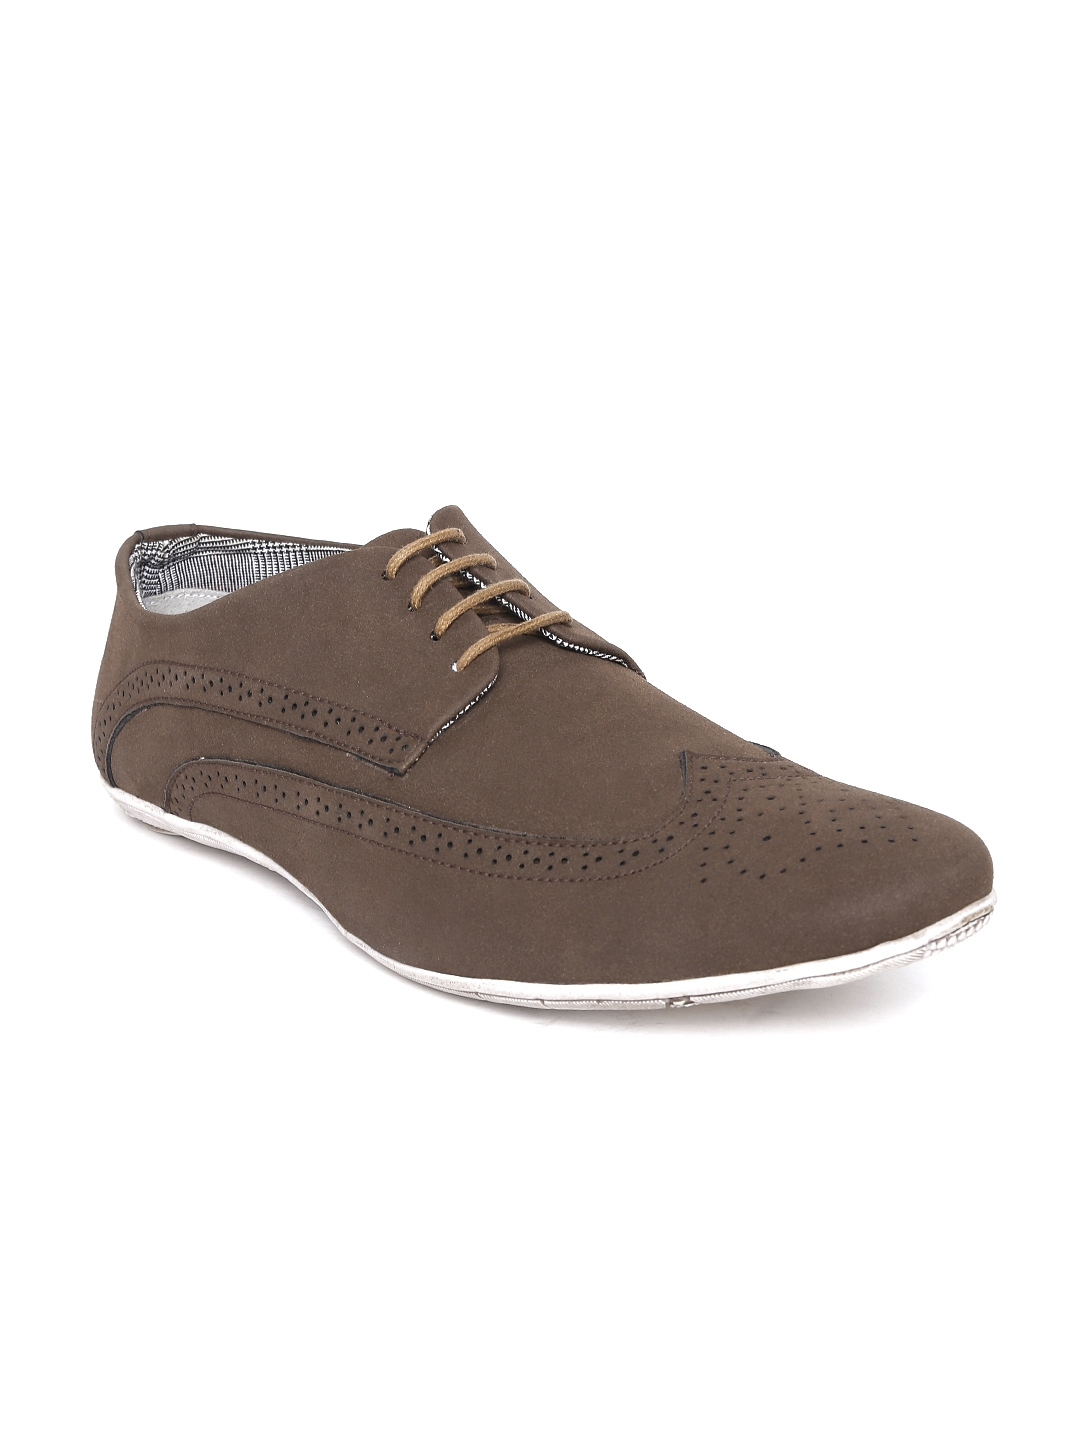 61a3dd3e930 Buy BCK By Buckaroo Men Brown Brogue Casual Shoes - Casual Shoes for ...